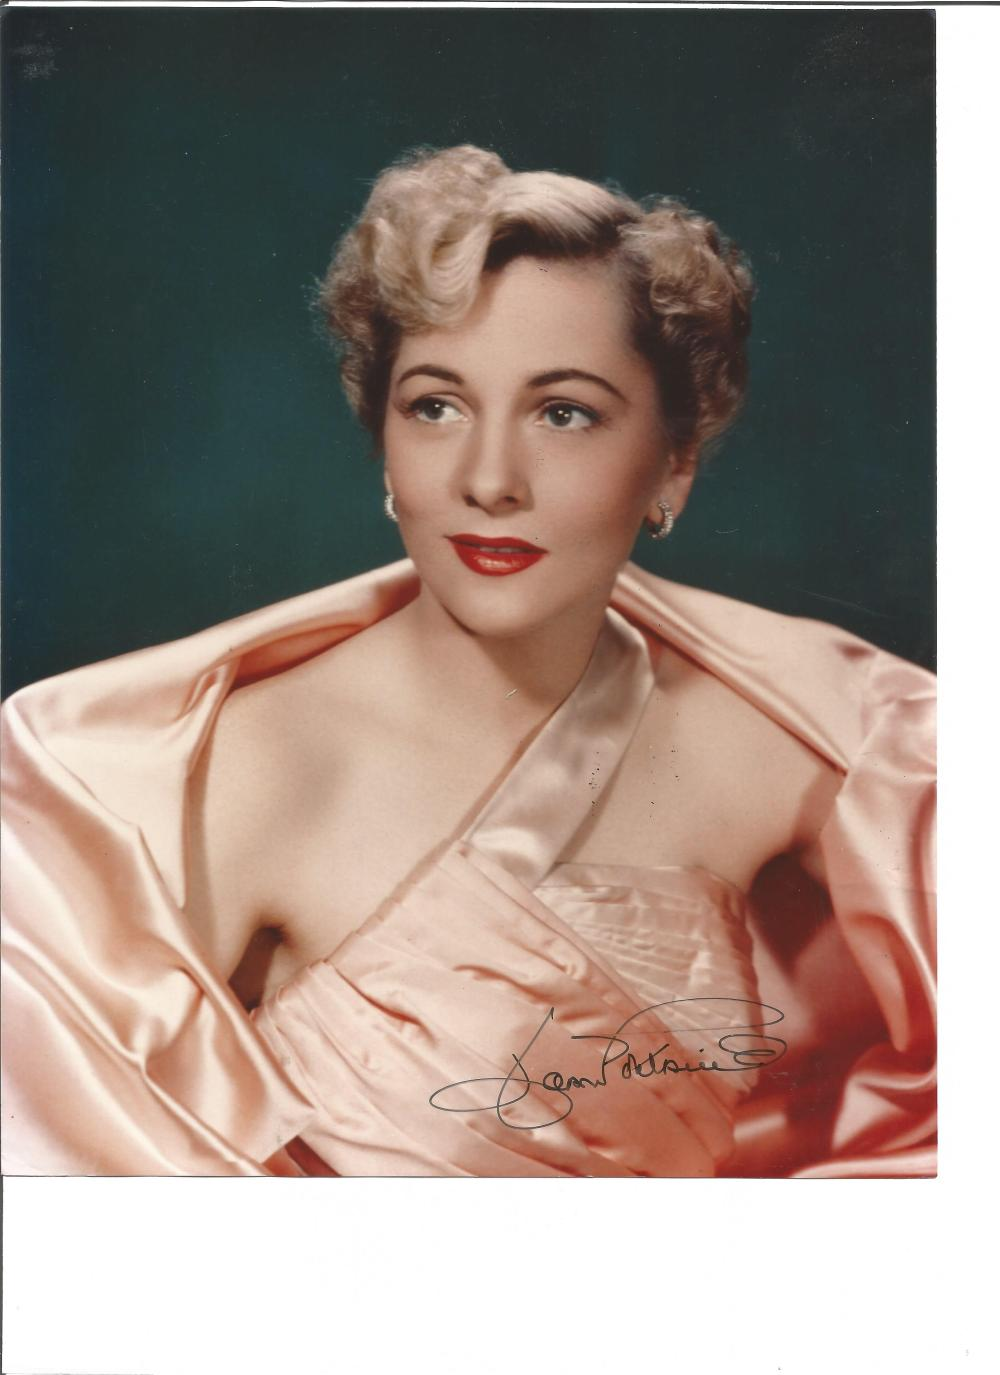 Joan Fontaine signed 10x8 colour photo. October 22, 1917 – December 15, 2013, was an American